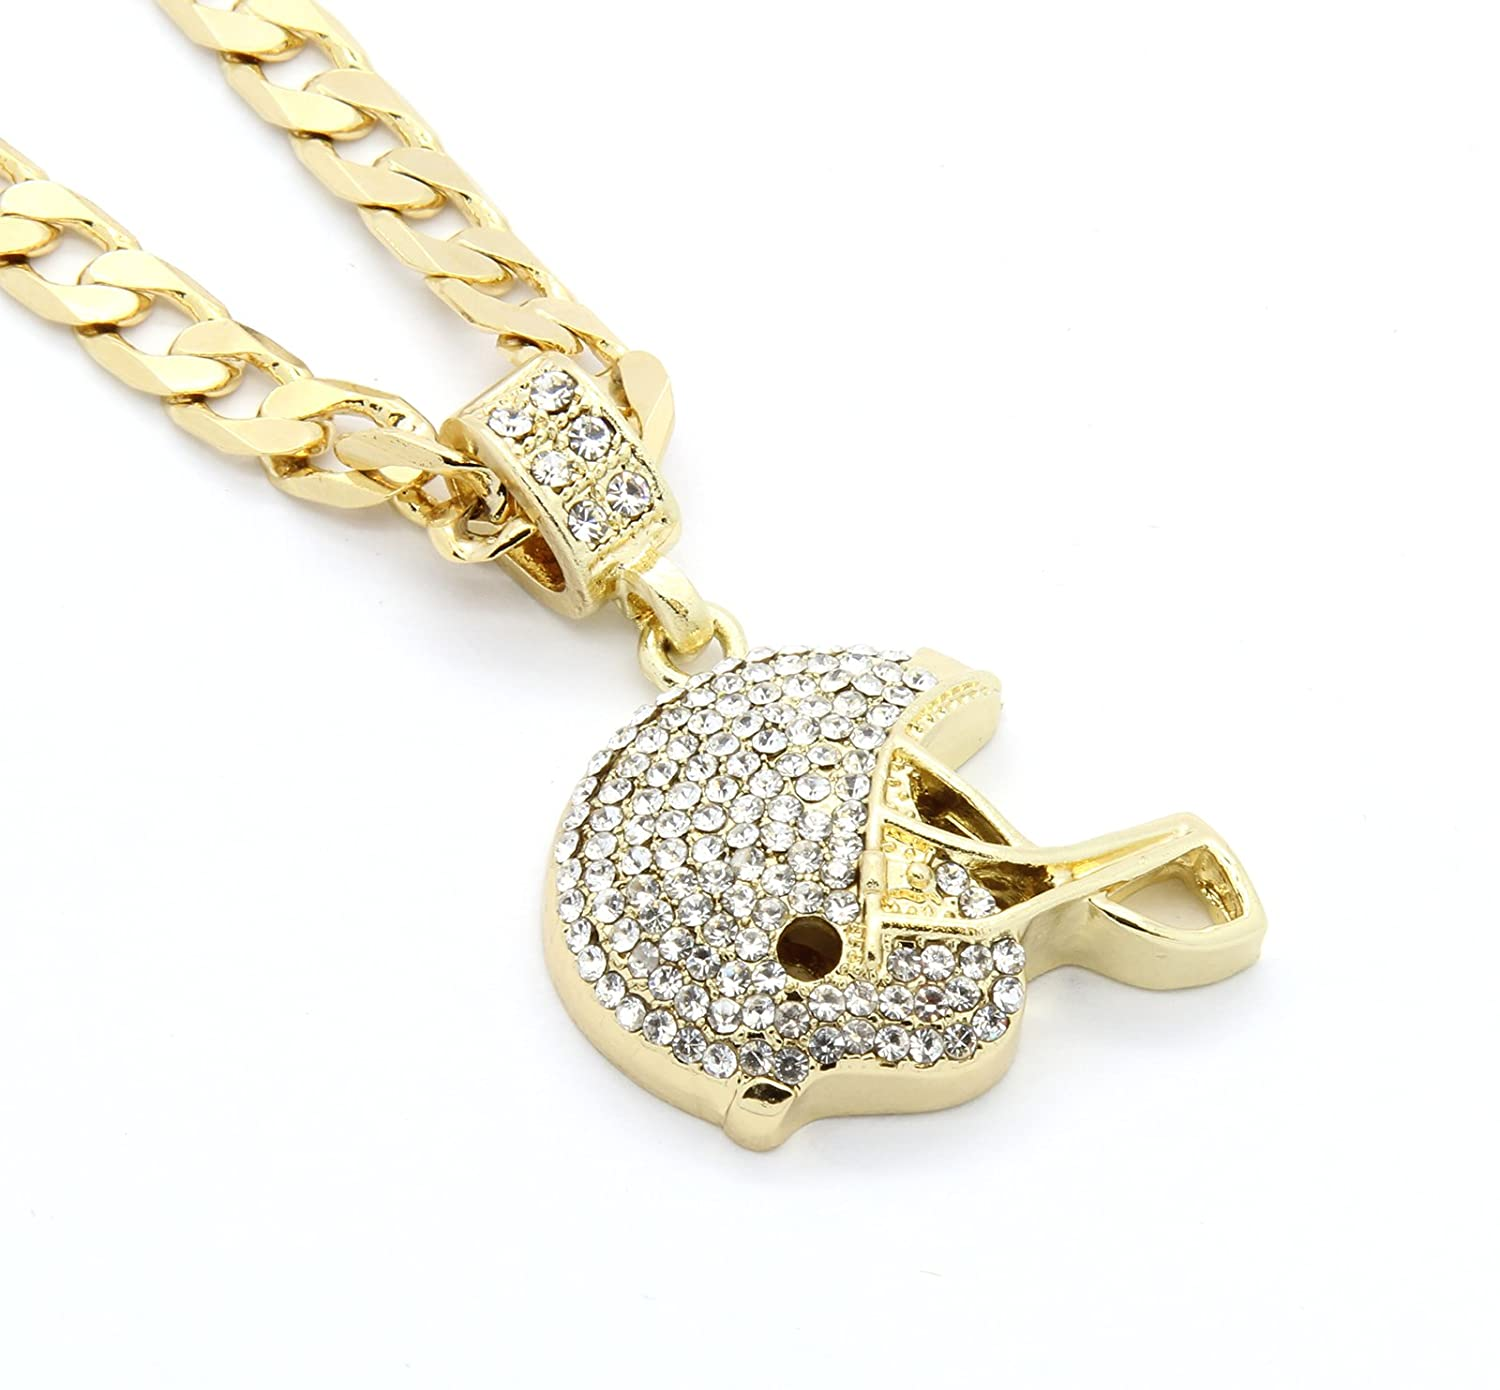 spin hei prod necklace sharpen pendants necklaces small b jewelry wid gold op kmart chains